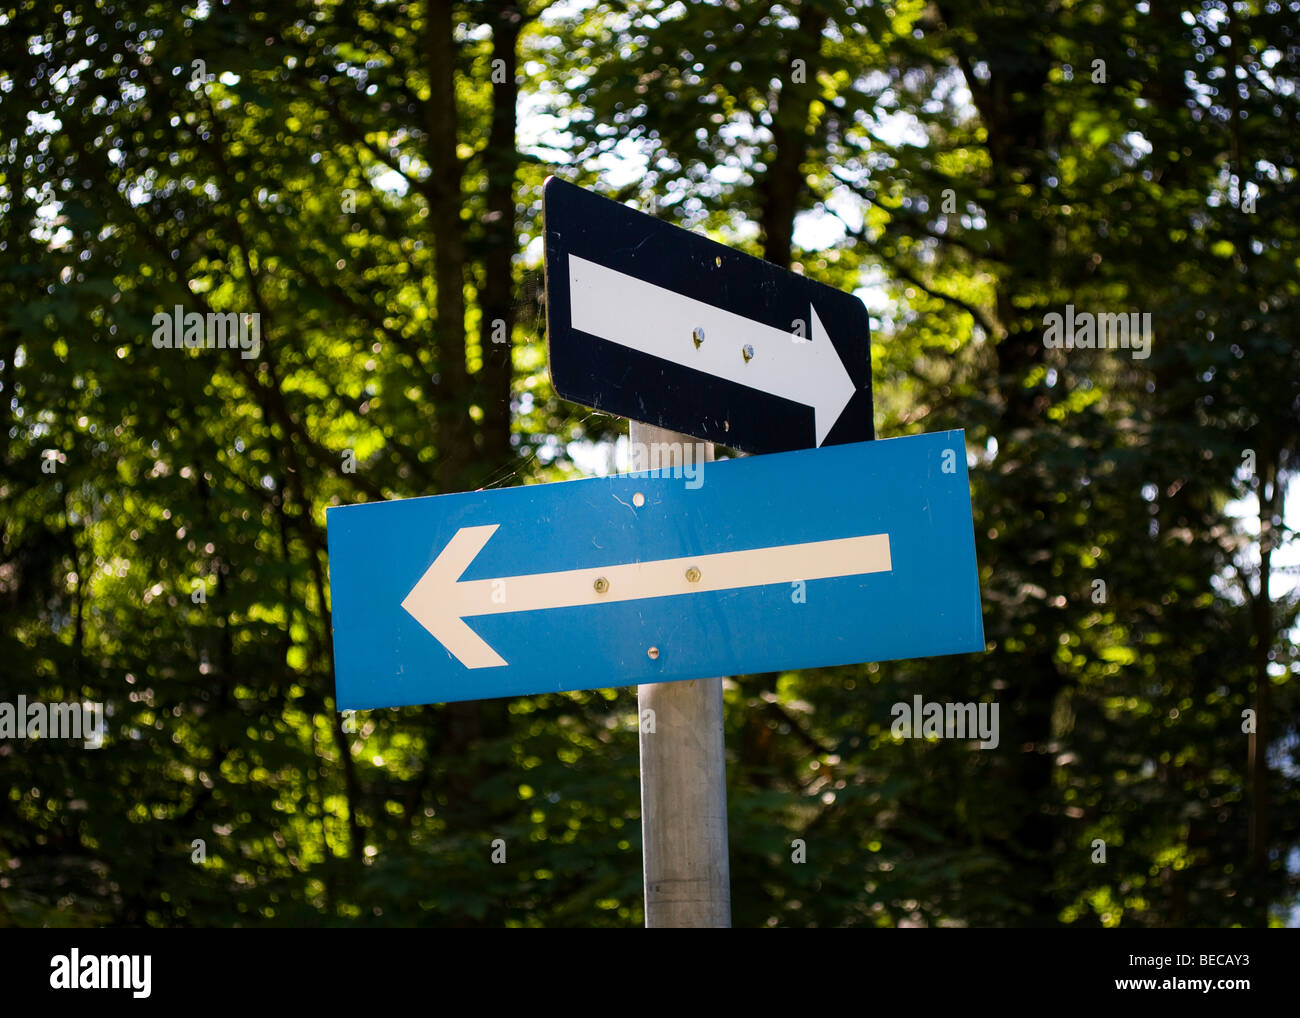 Signpost with two arrows - Stock Image